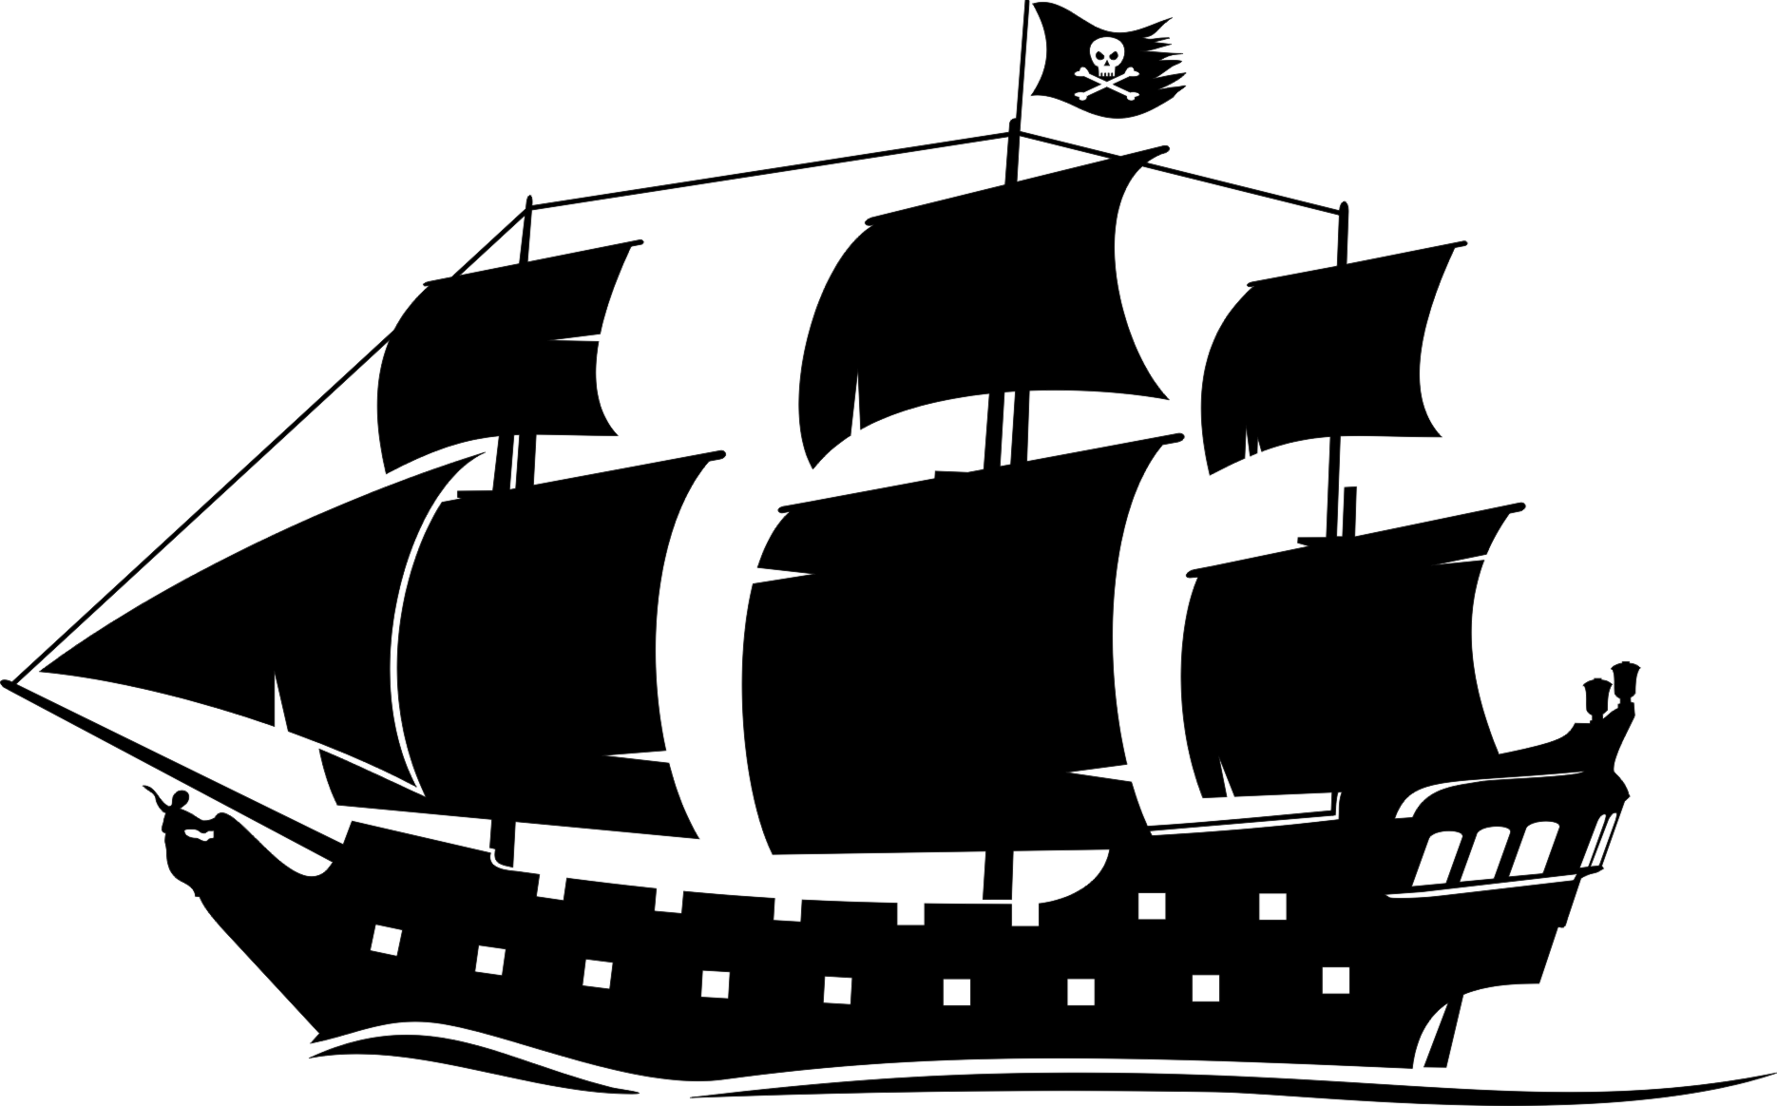 Peter pan ship png. Pirate silhouette clipart clip